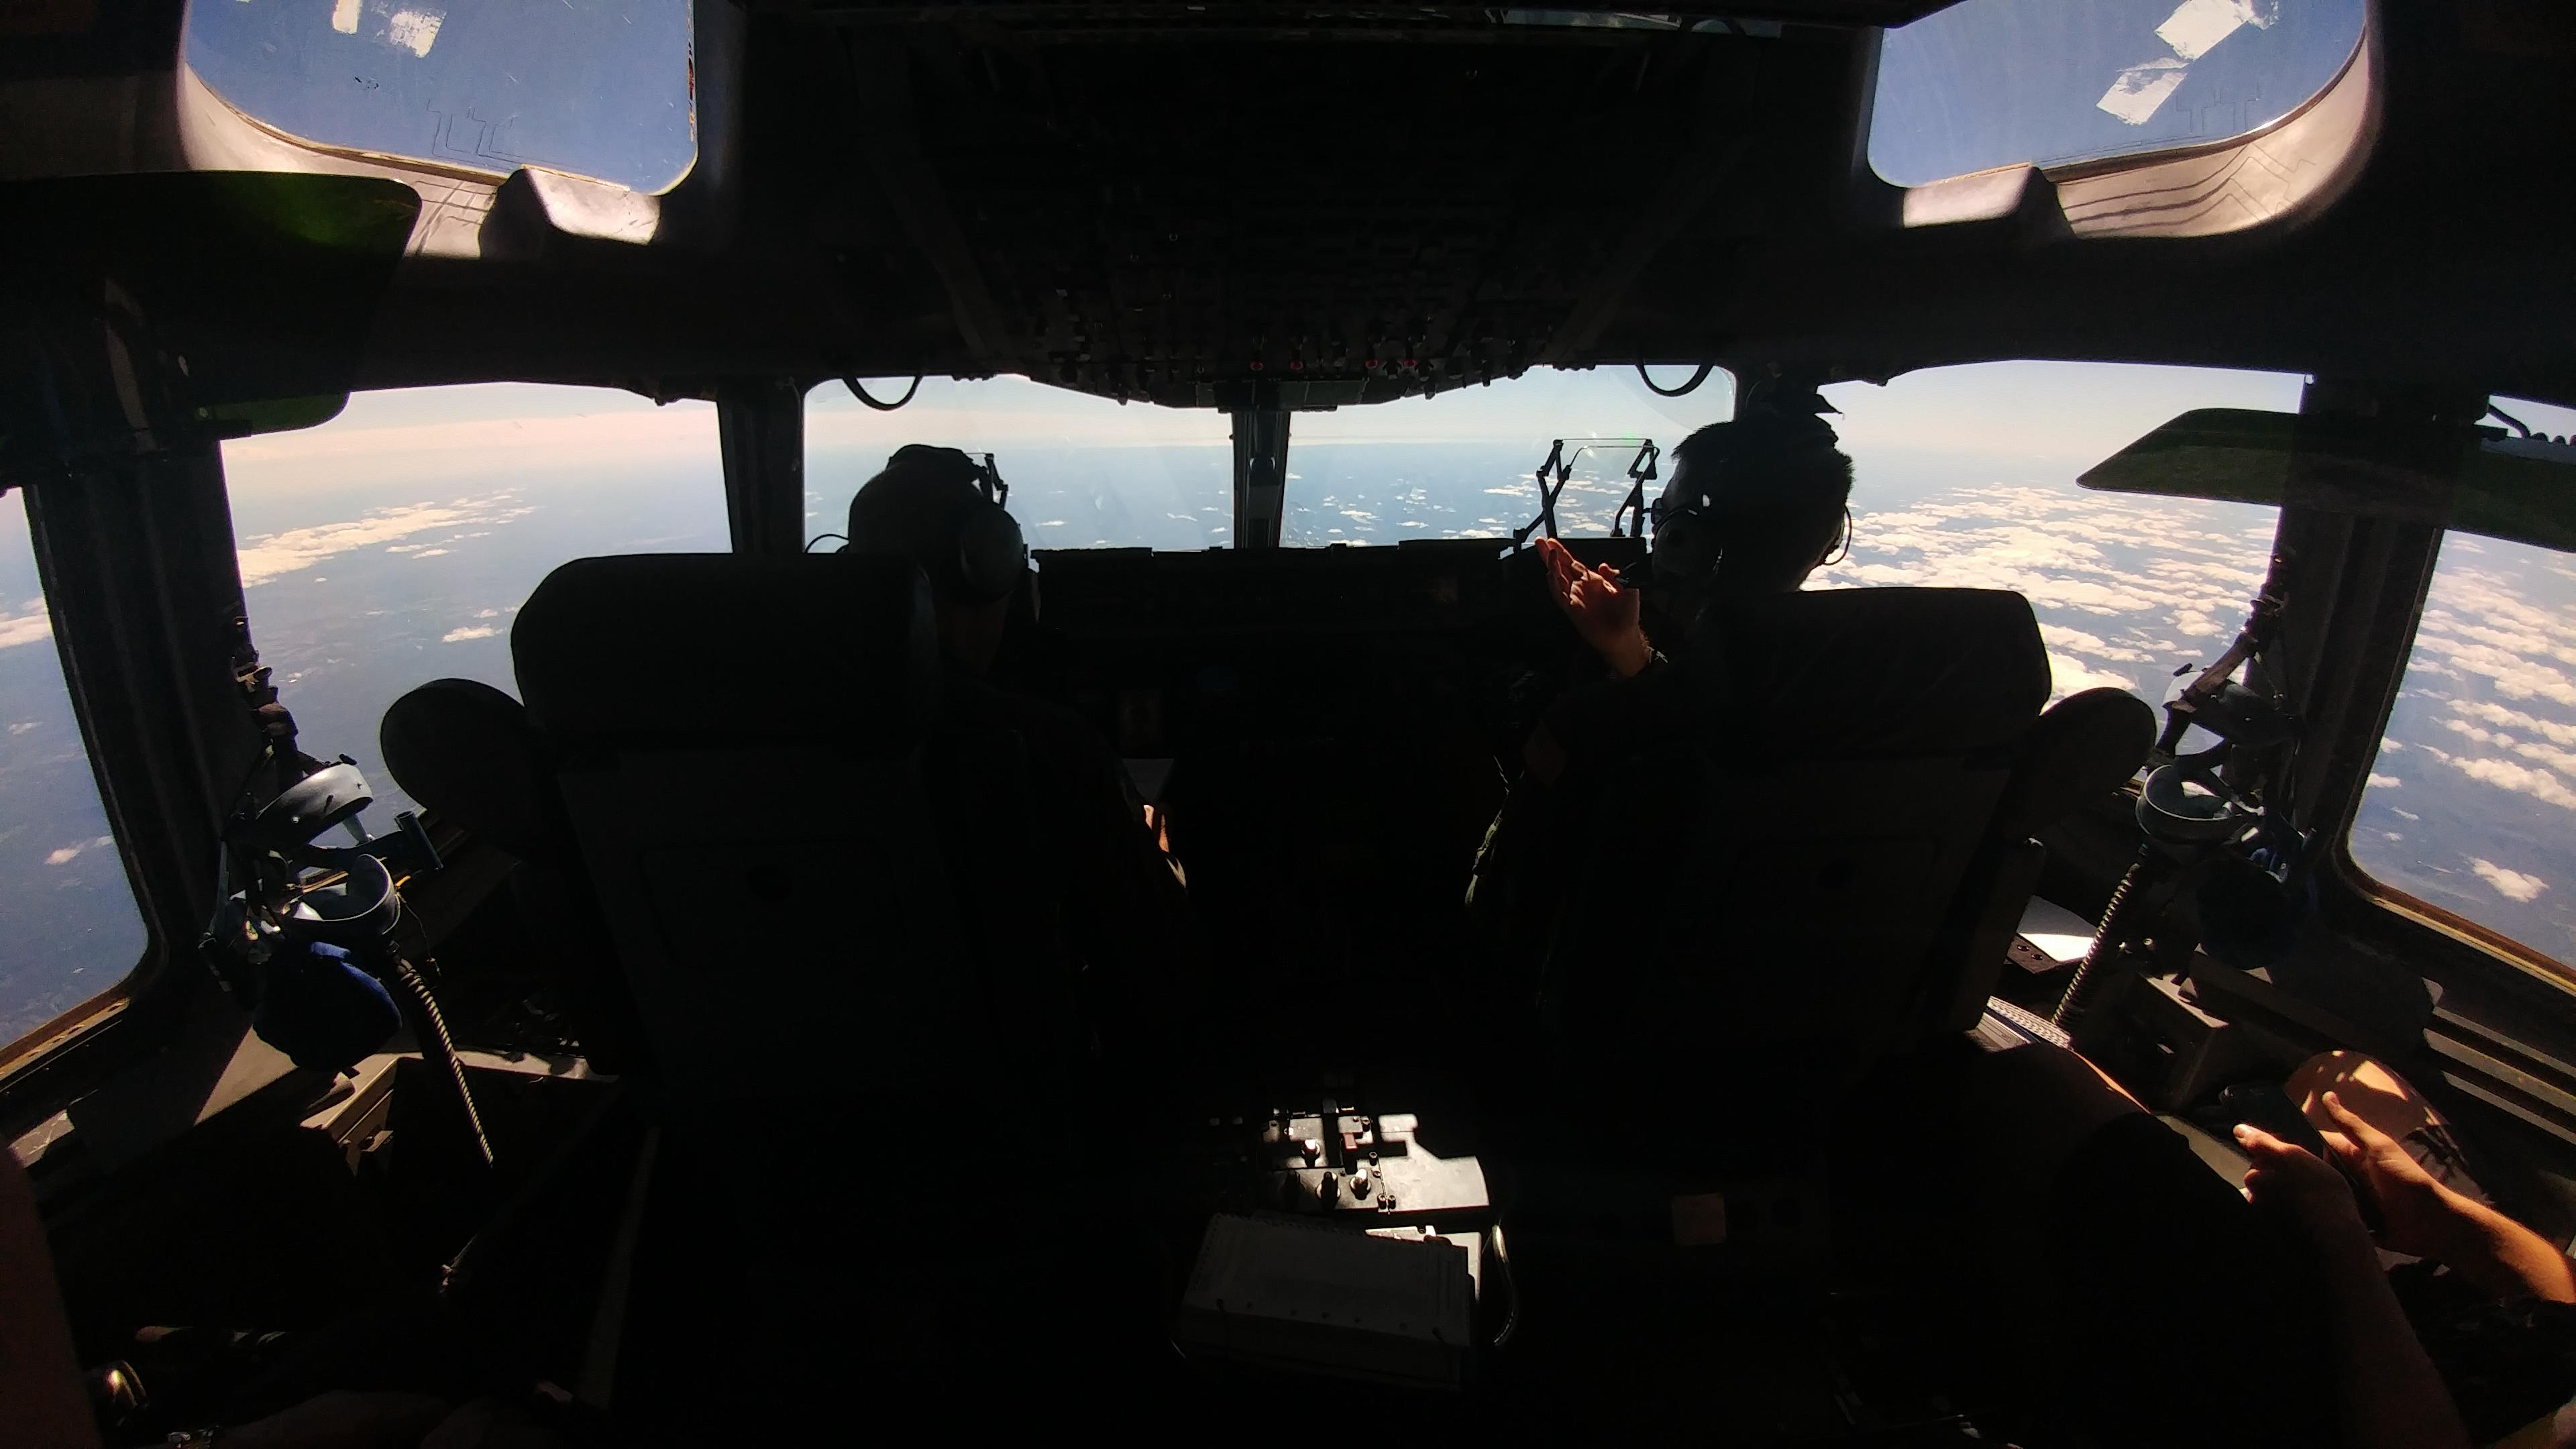 Aircrew members from Dover Air Force Base, Del. operate a C-17 Globemaster III during a training mission over Pennsylvania Sept. 28, 2017. The aircraft made several aerial refueling connections with a KC-135 Stratotanker during the mission. (U.S. Air Force photo by Tech. Sgt. Chuck Broadway)